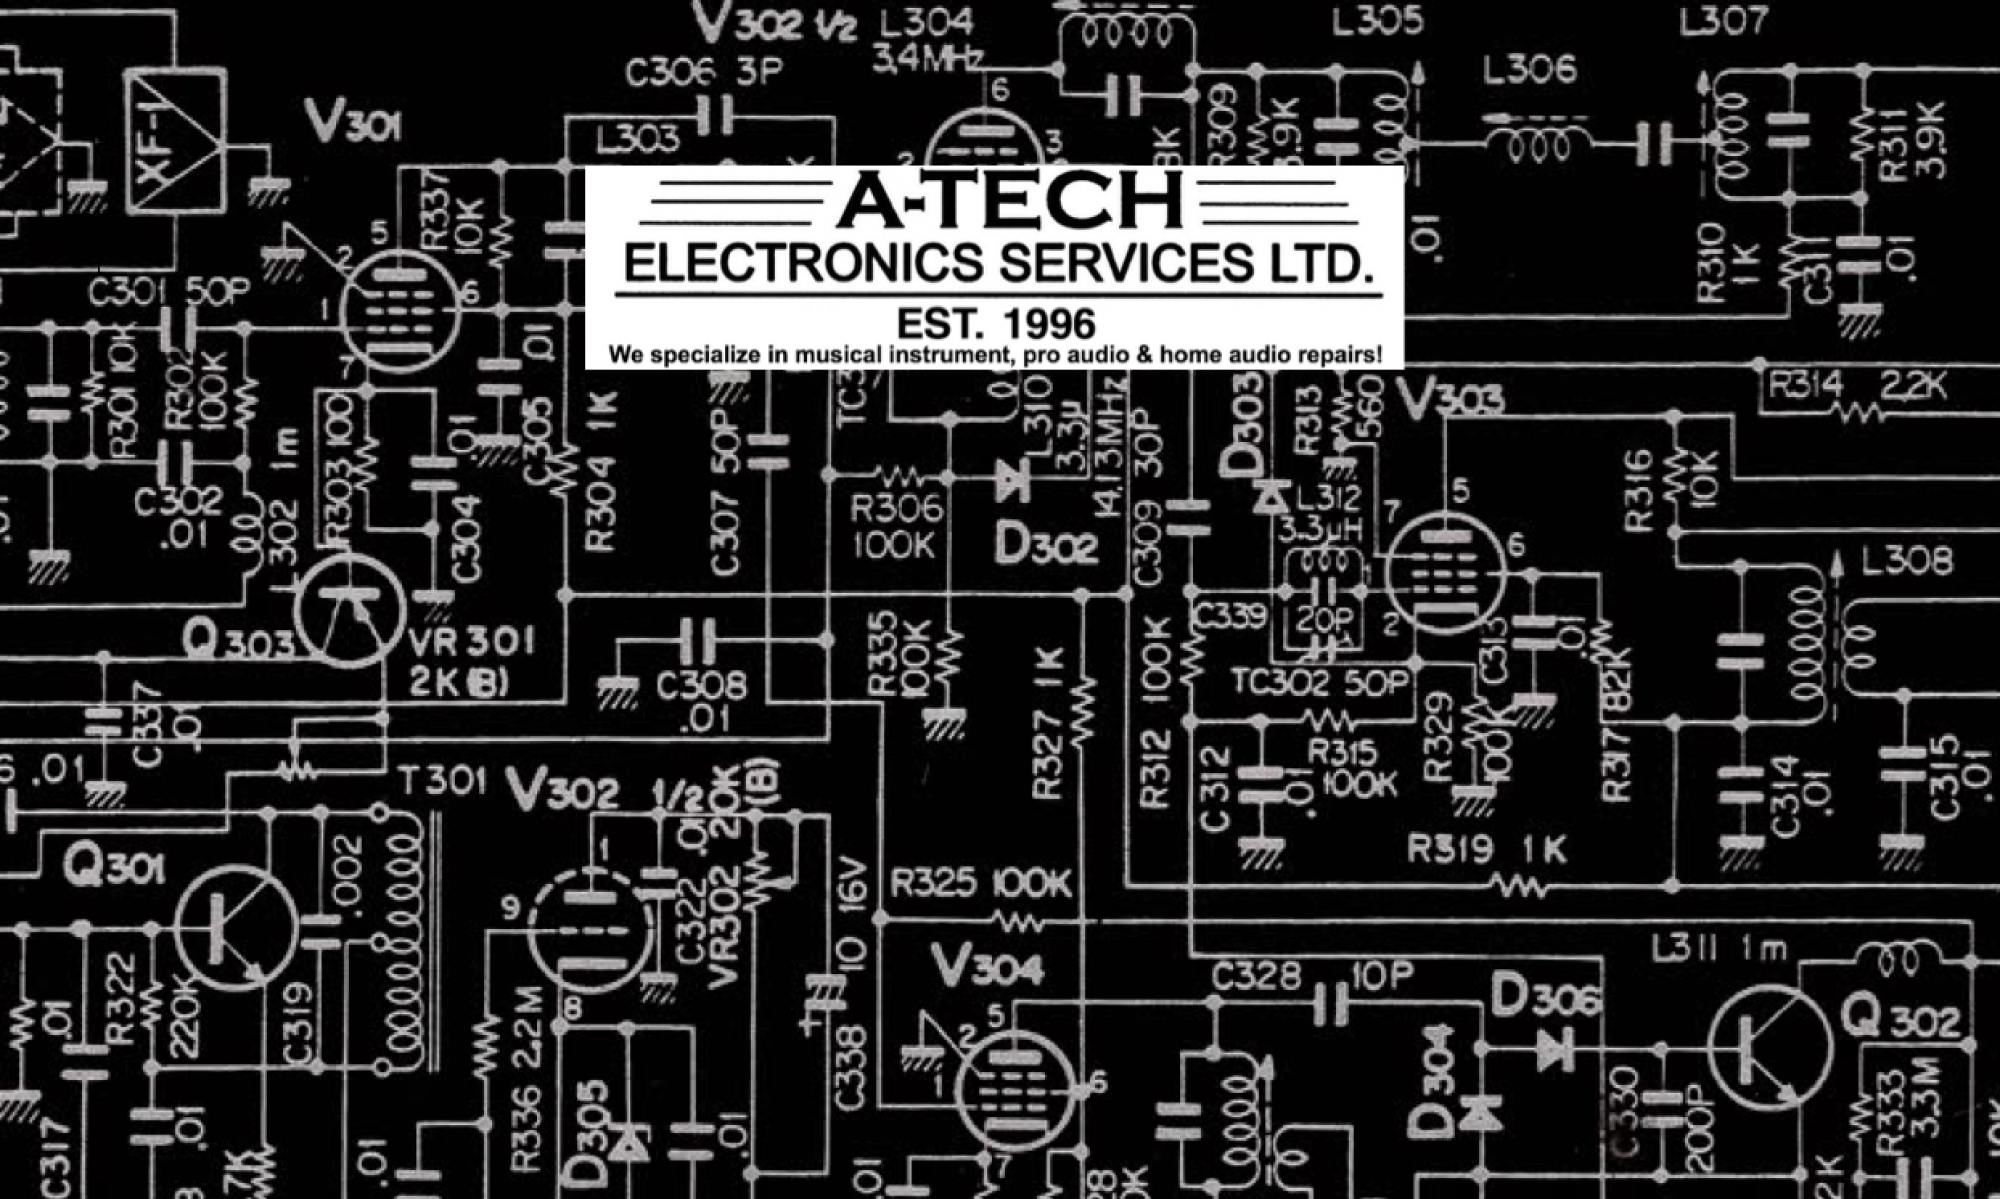 A-Tech Electronics Services Ltd.